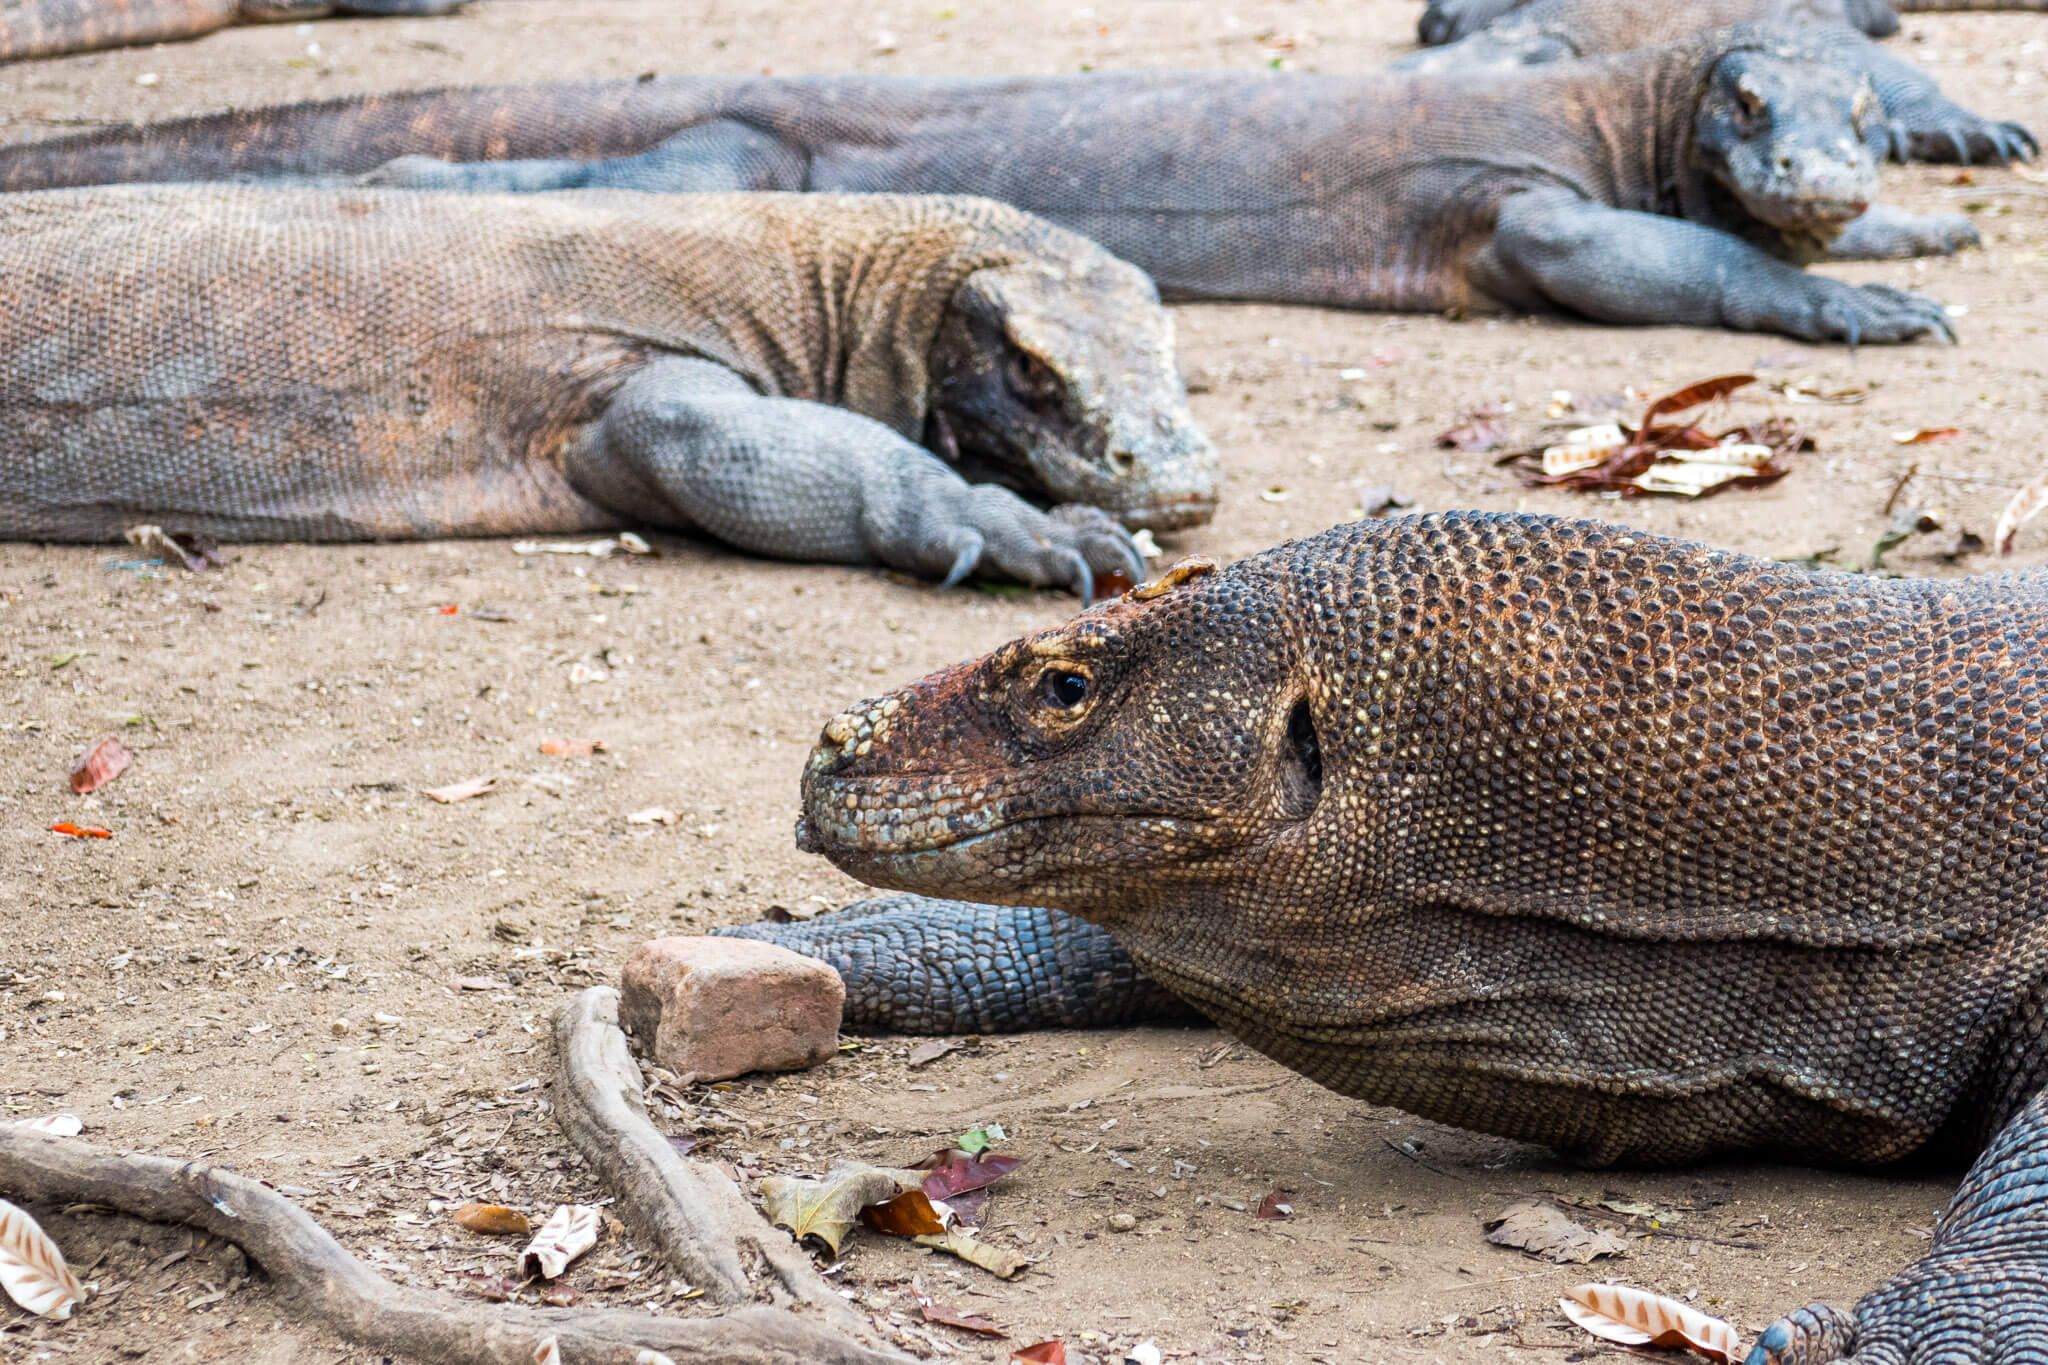 Getting close and personal with the Komodo Dragons